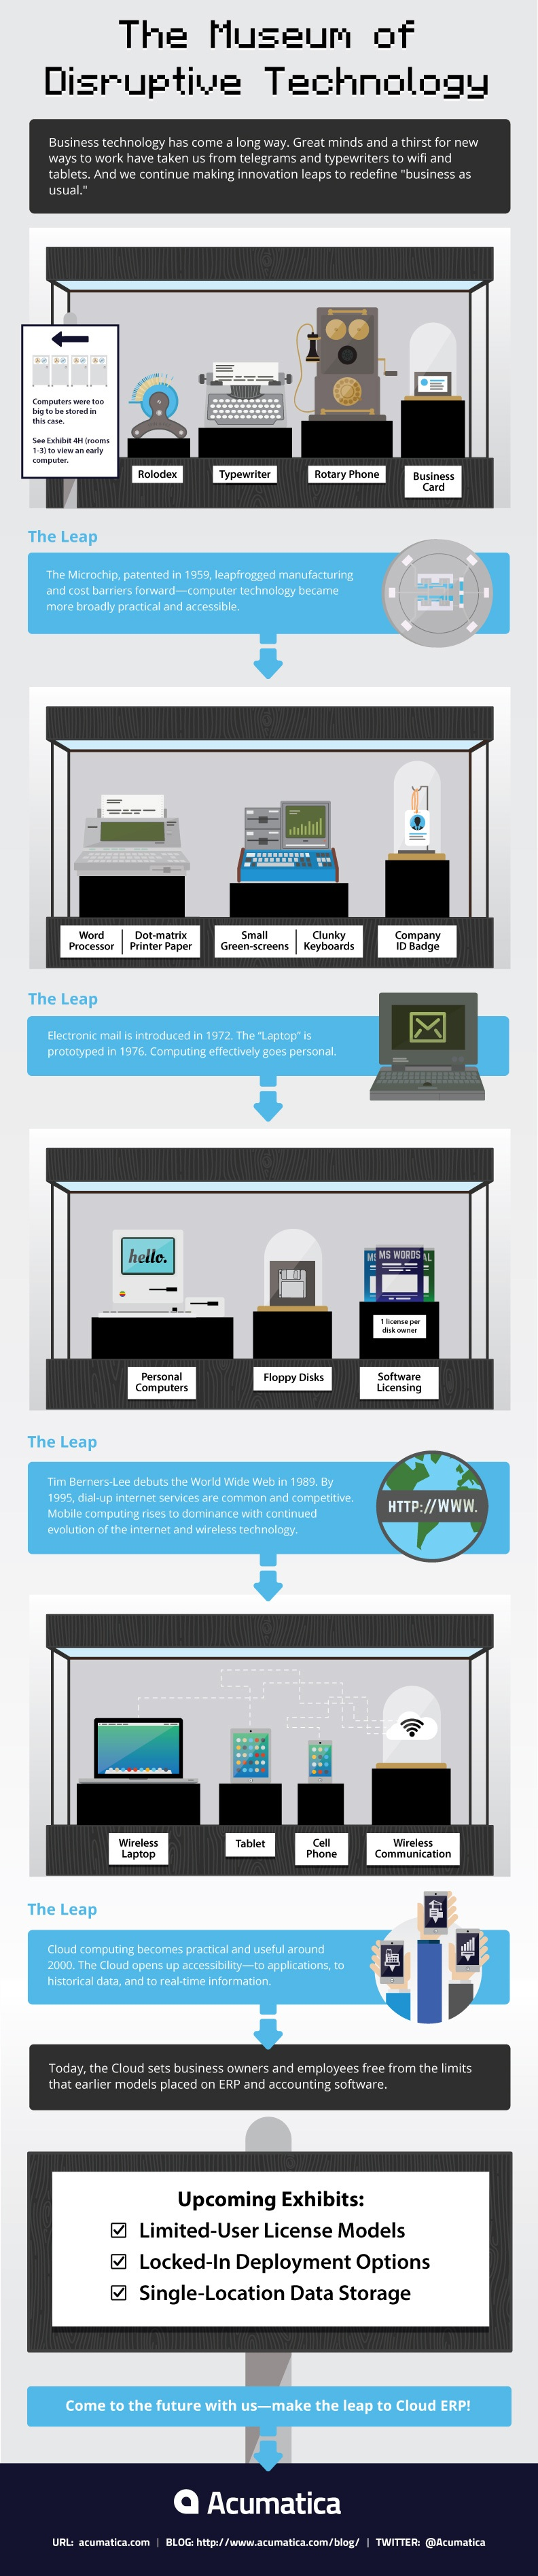 The Museum of Disruptive Technology Infographic